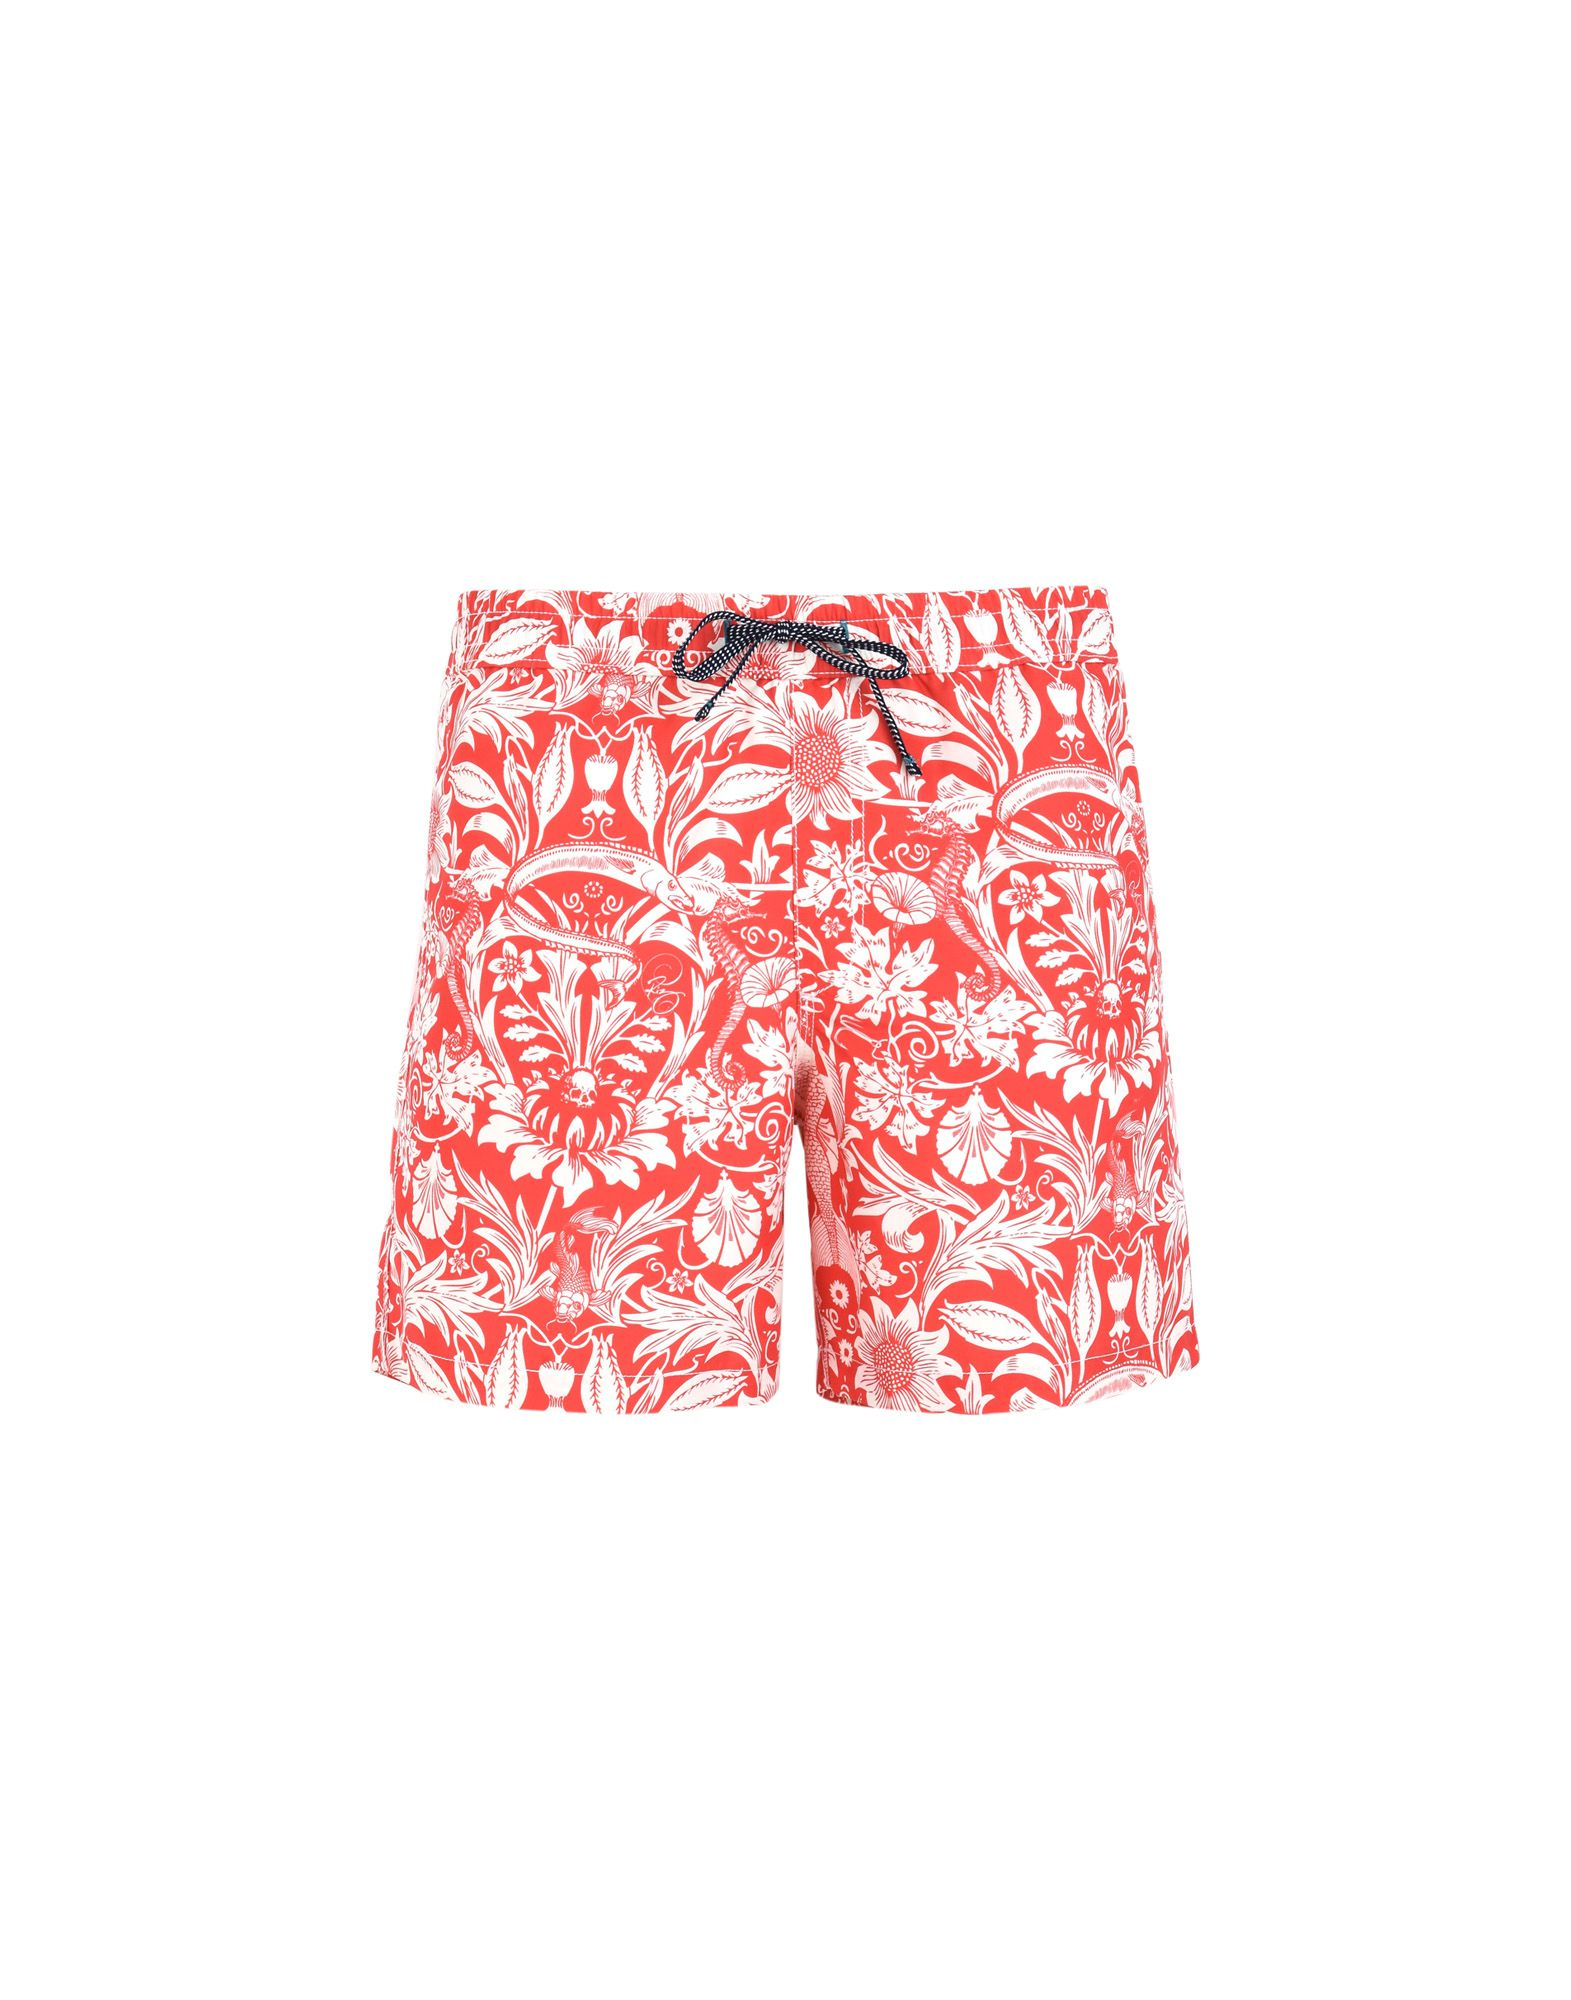 RIZ BOARDSHORTS Swim Shorts in Red